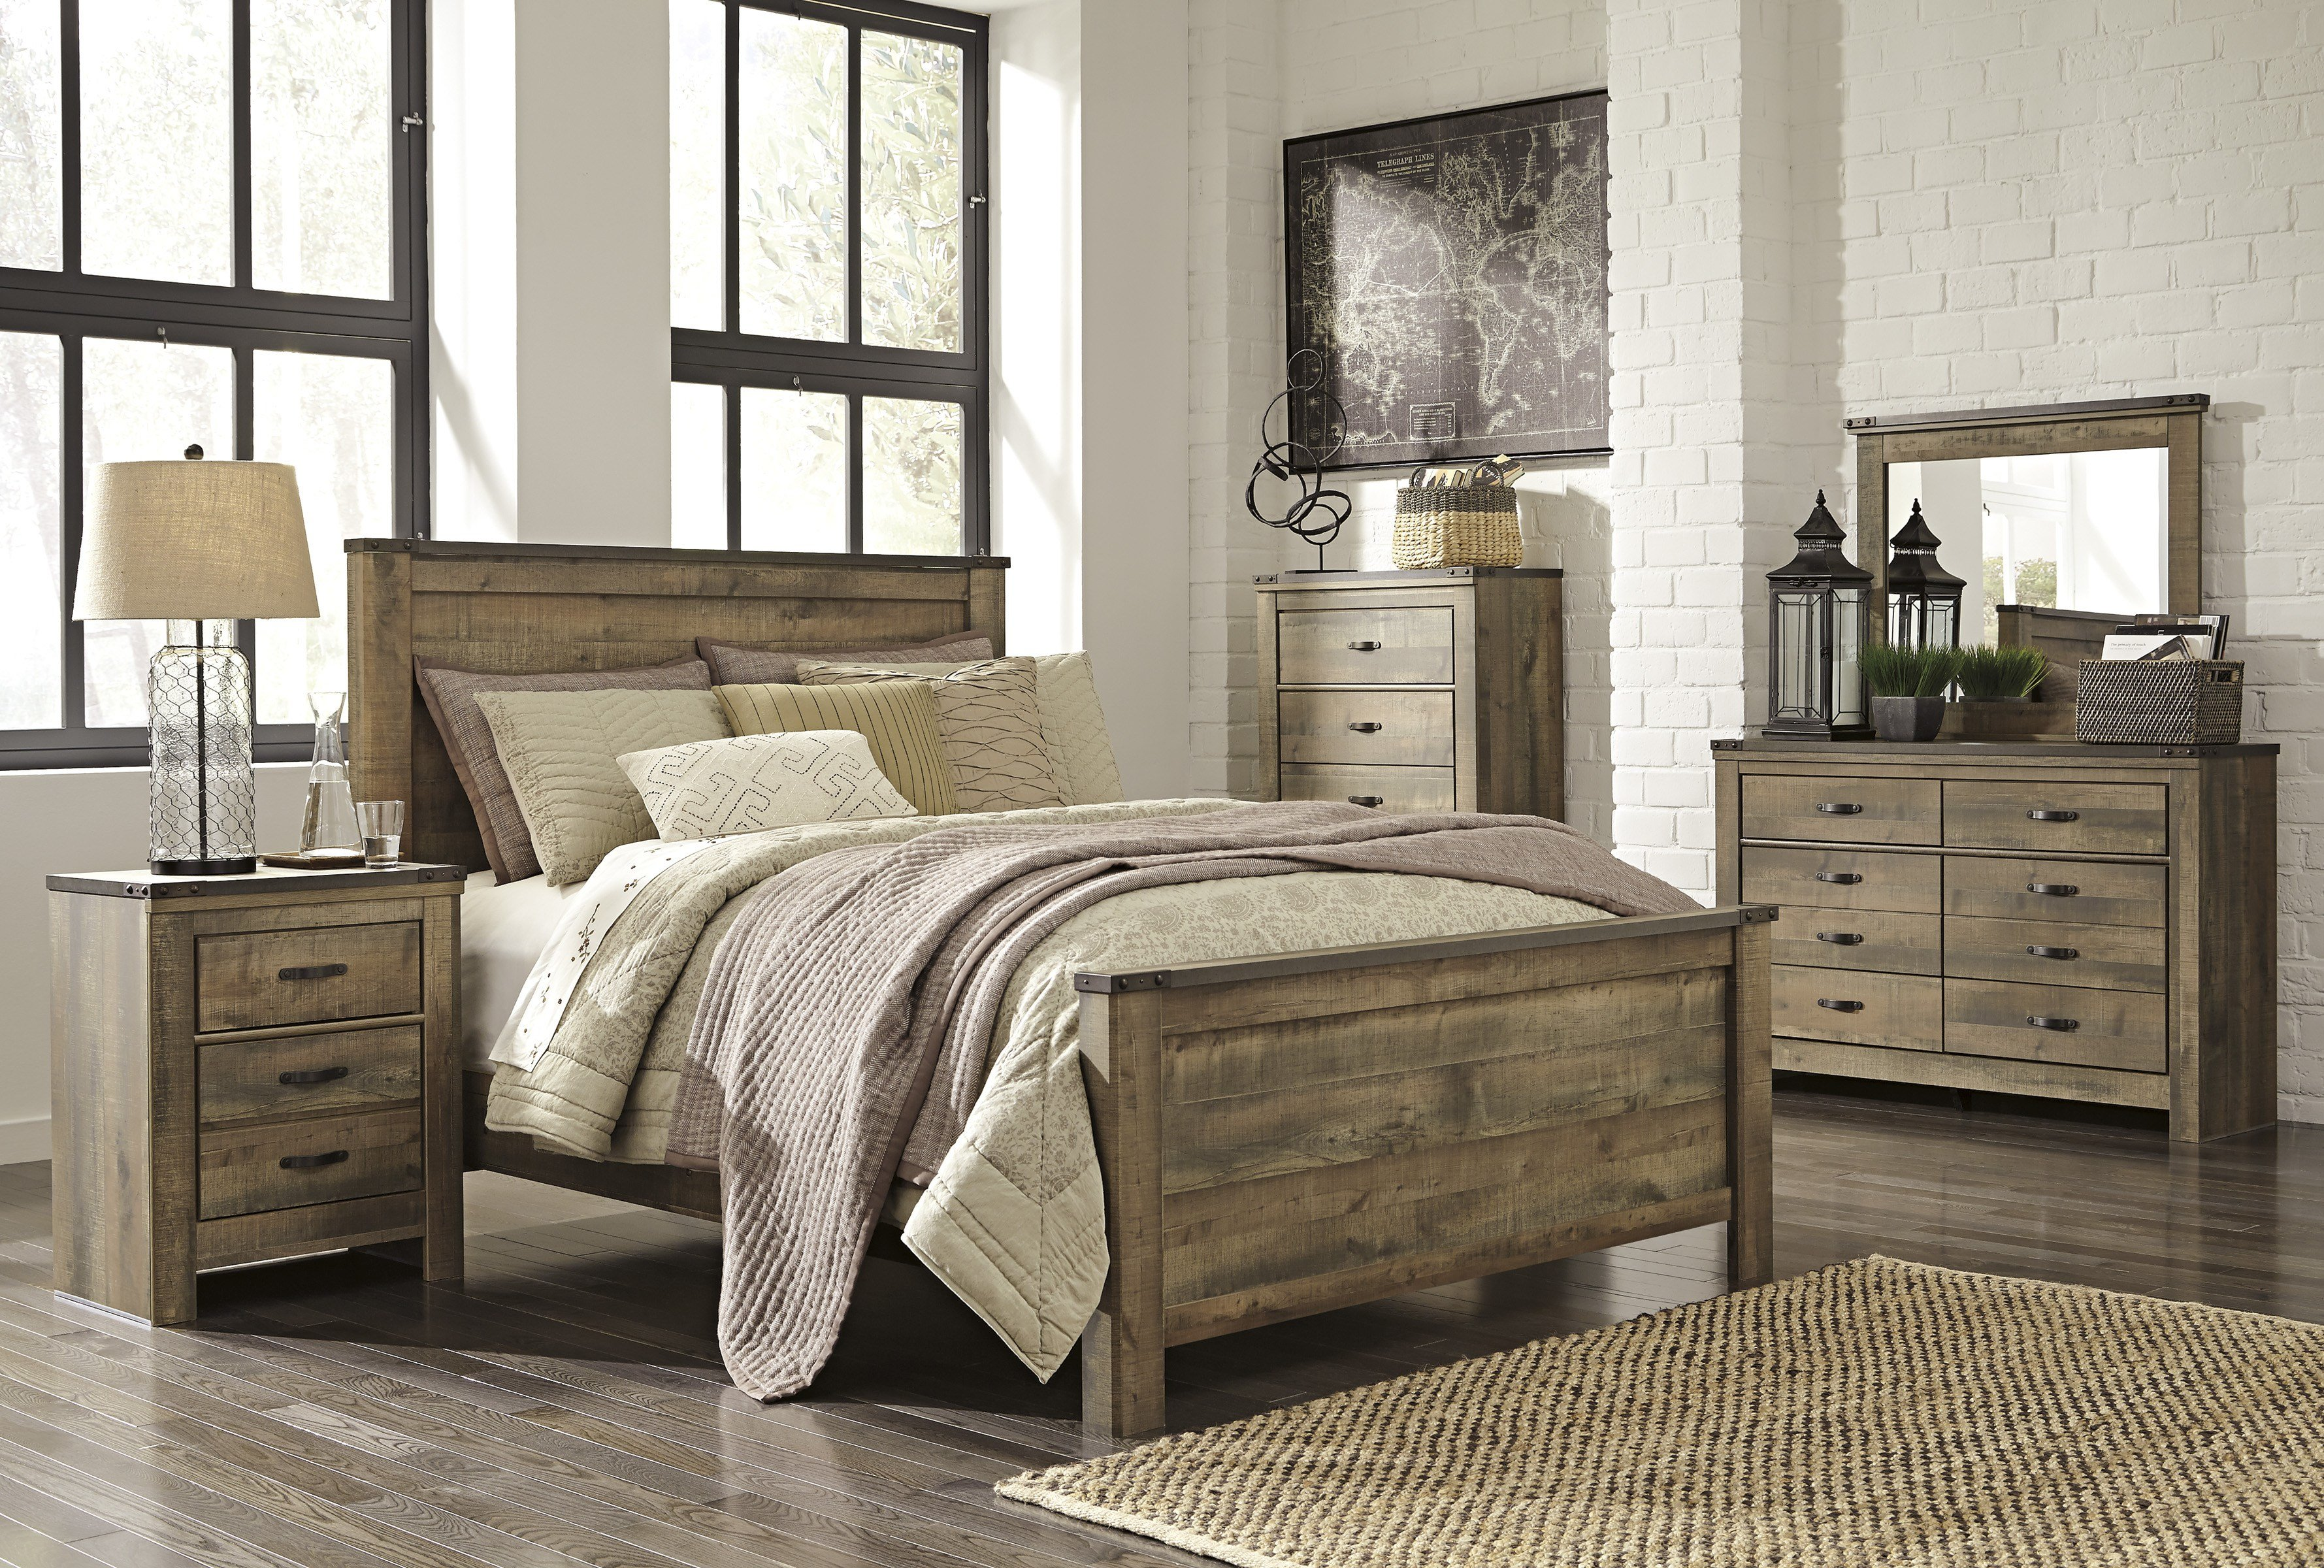 Best Bedroom Furniture Gallery Scott S Furniture Cleveland Tn With Pictures